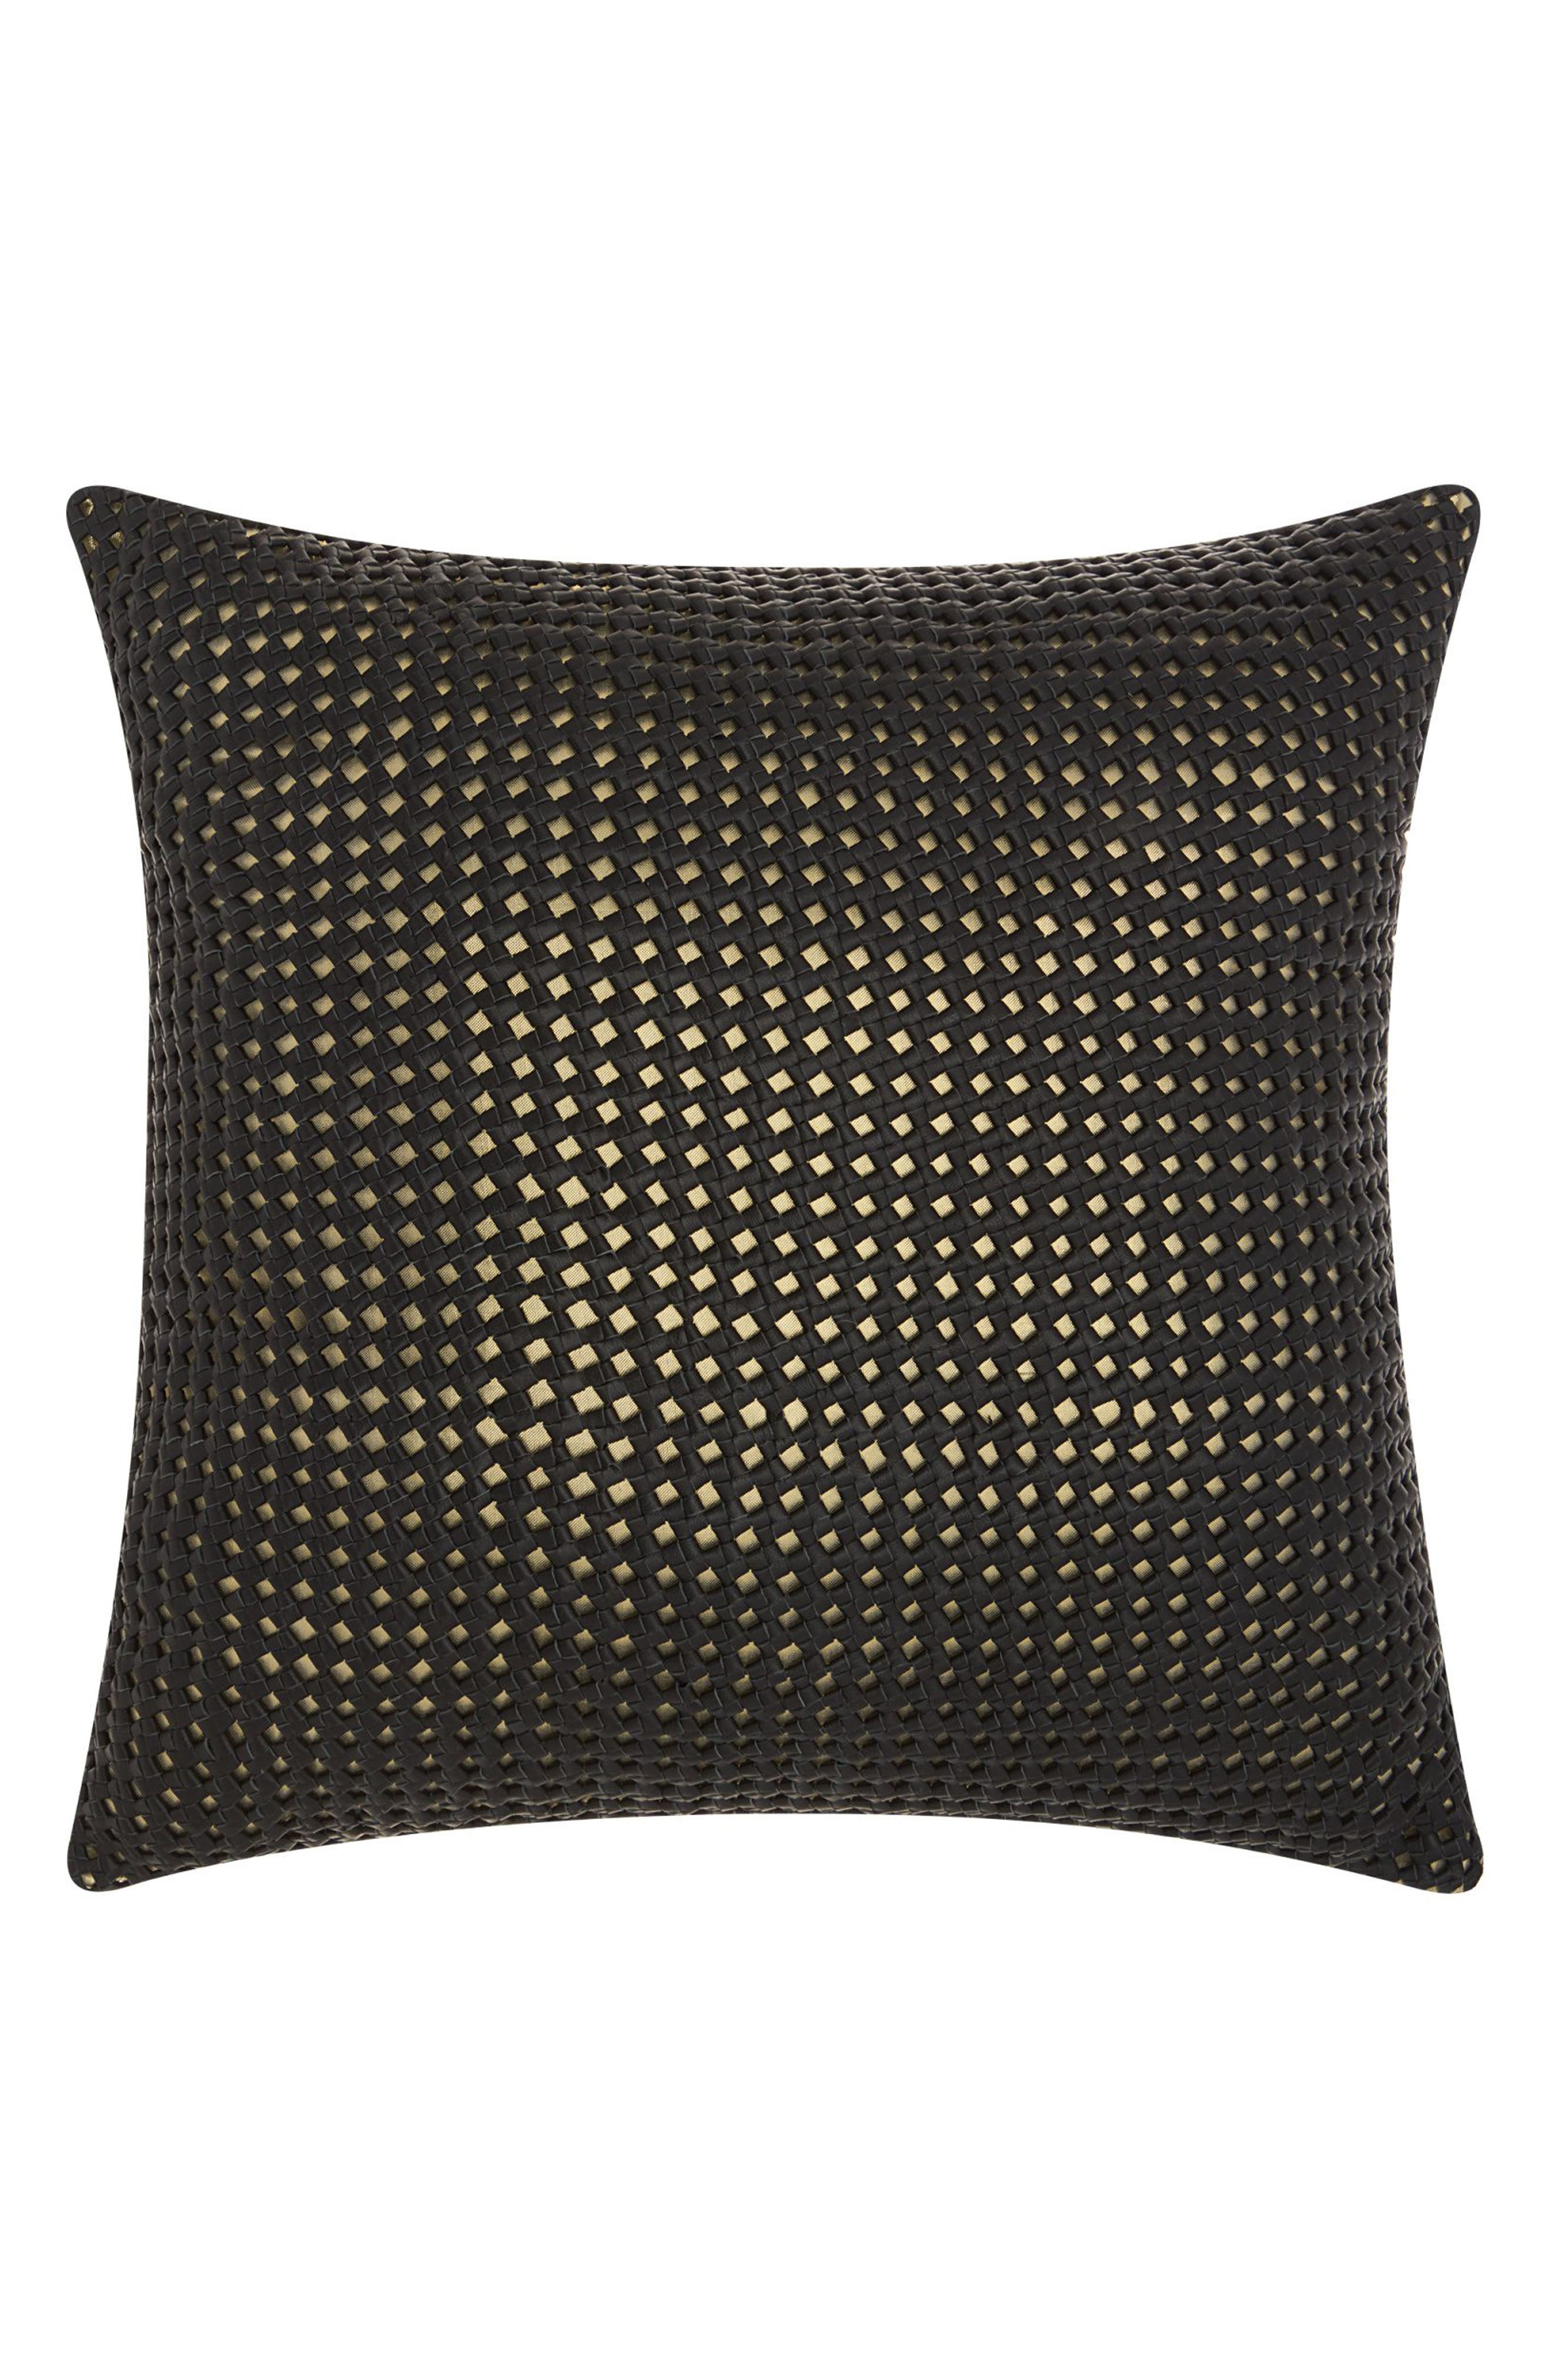 Woven Leather Accent Pillow,                             Main thumbnail 1, color,                             Black